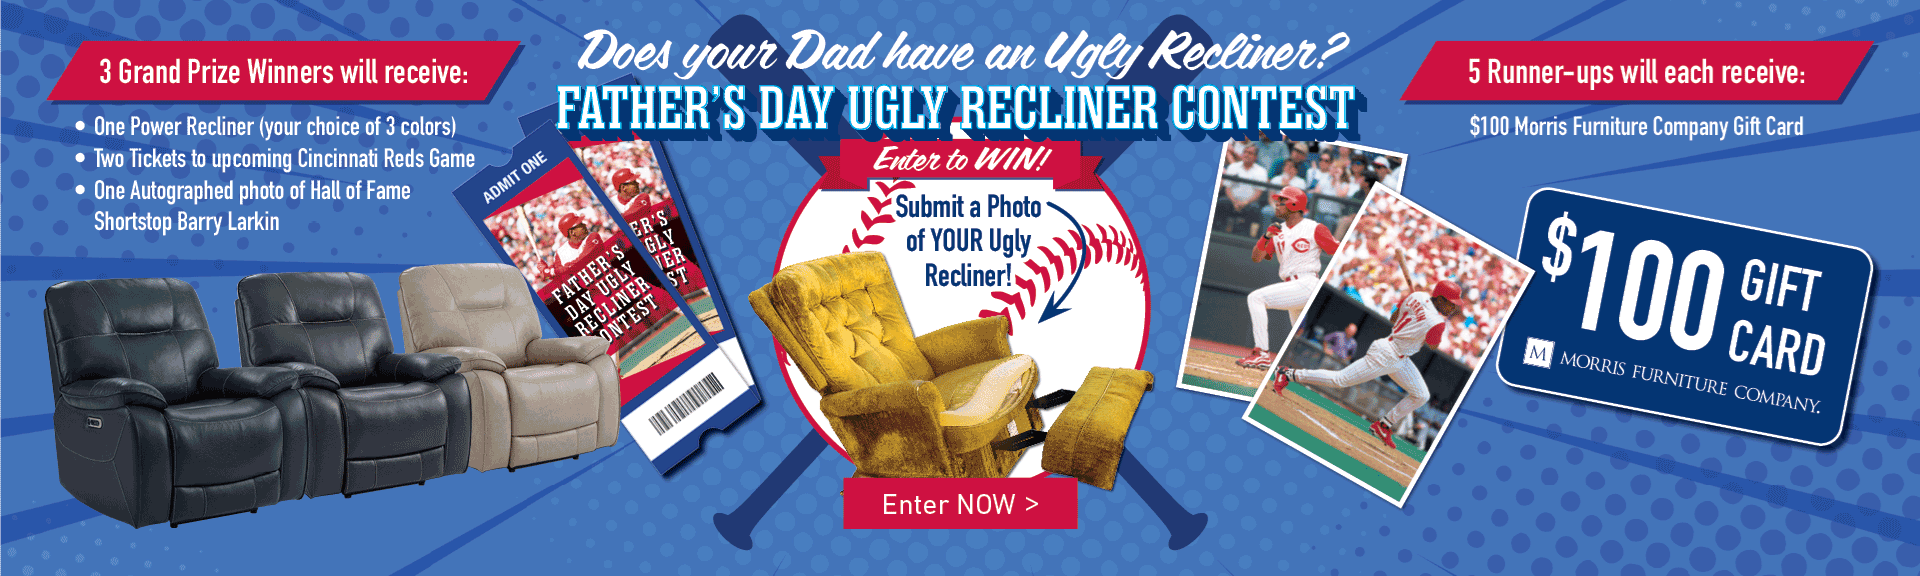 Ugly Recliner Contest